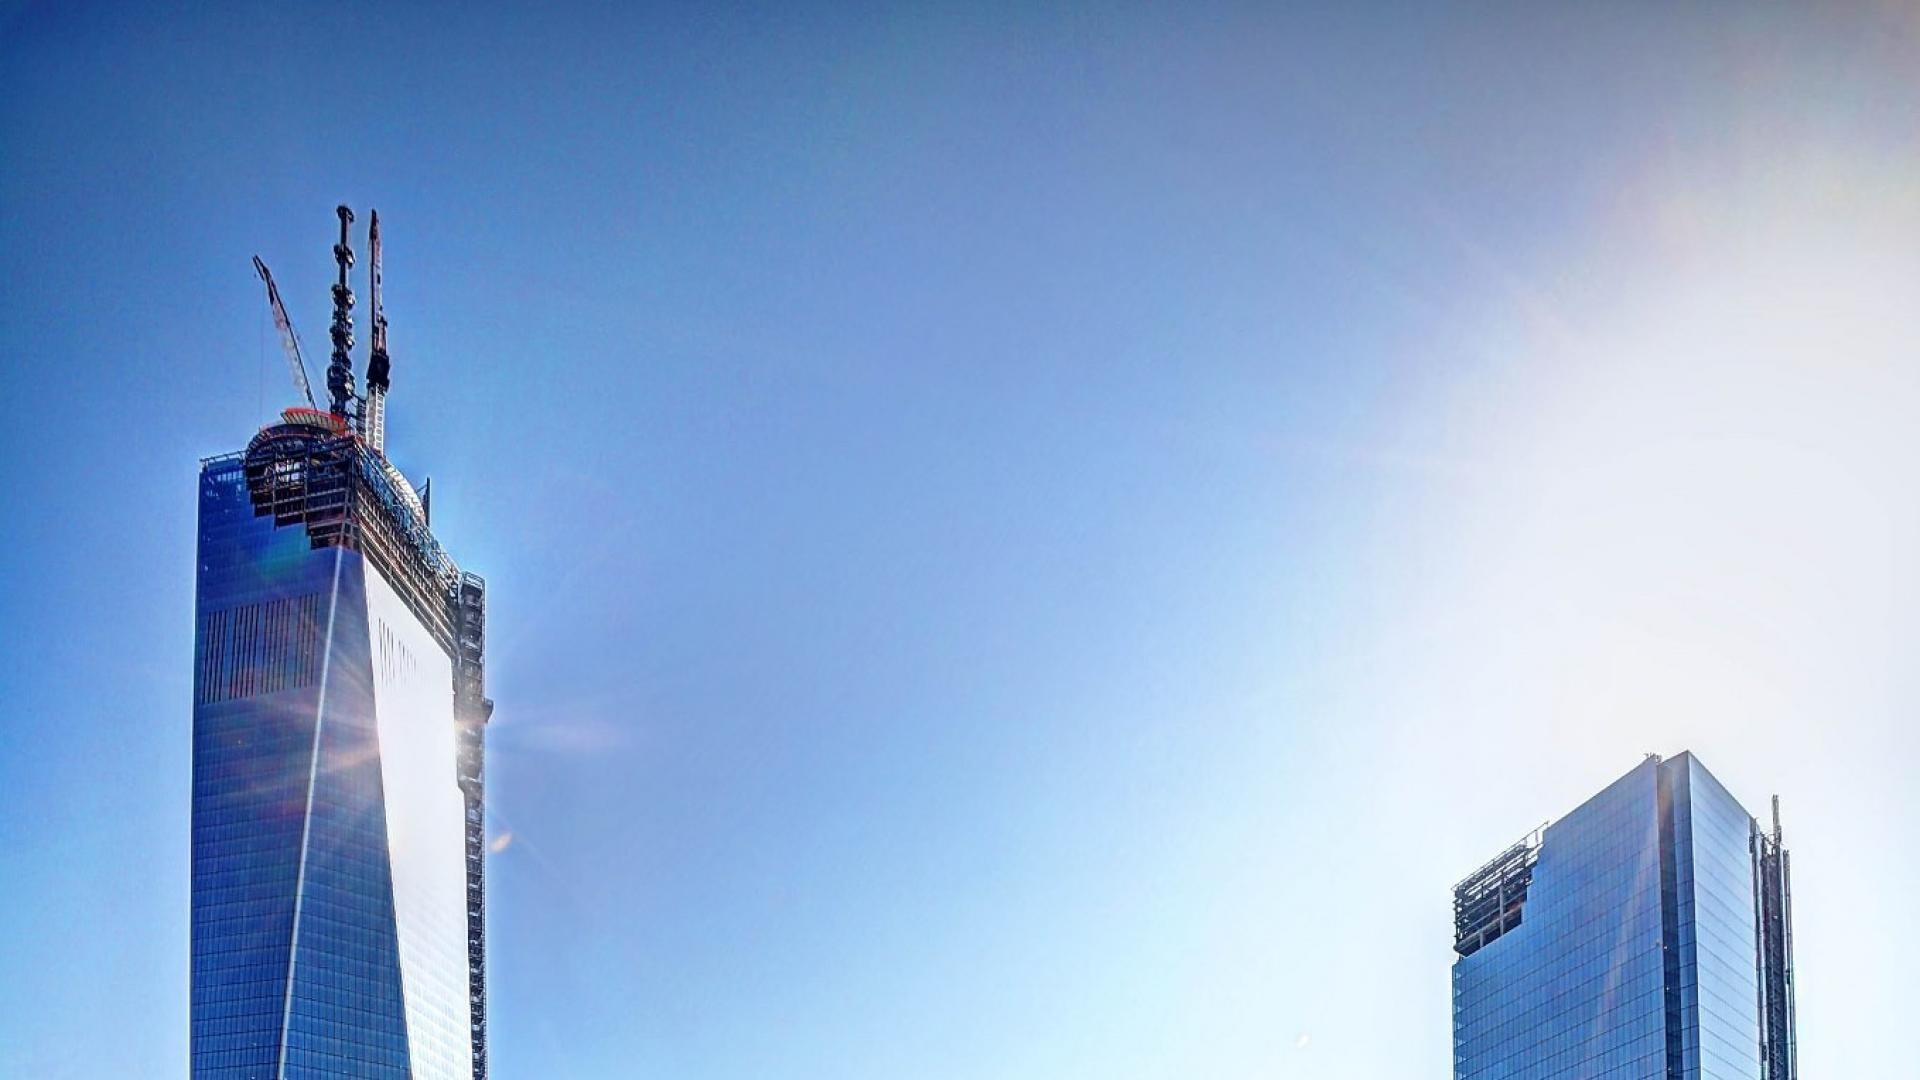 Res: 1920x1080, Skyscrapers freedom tower one world trade center wallpaper 66421